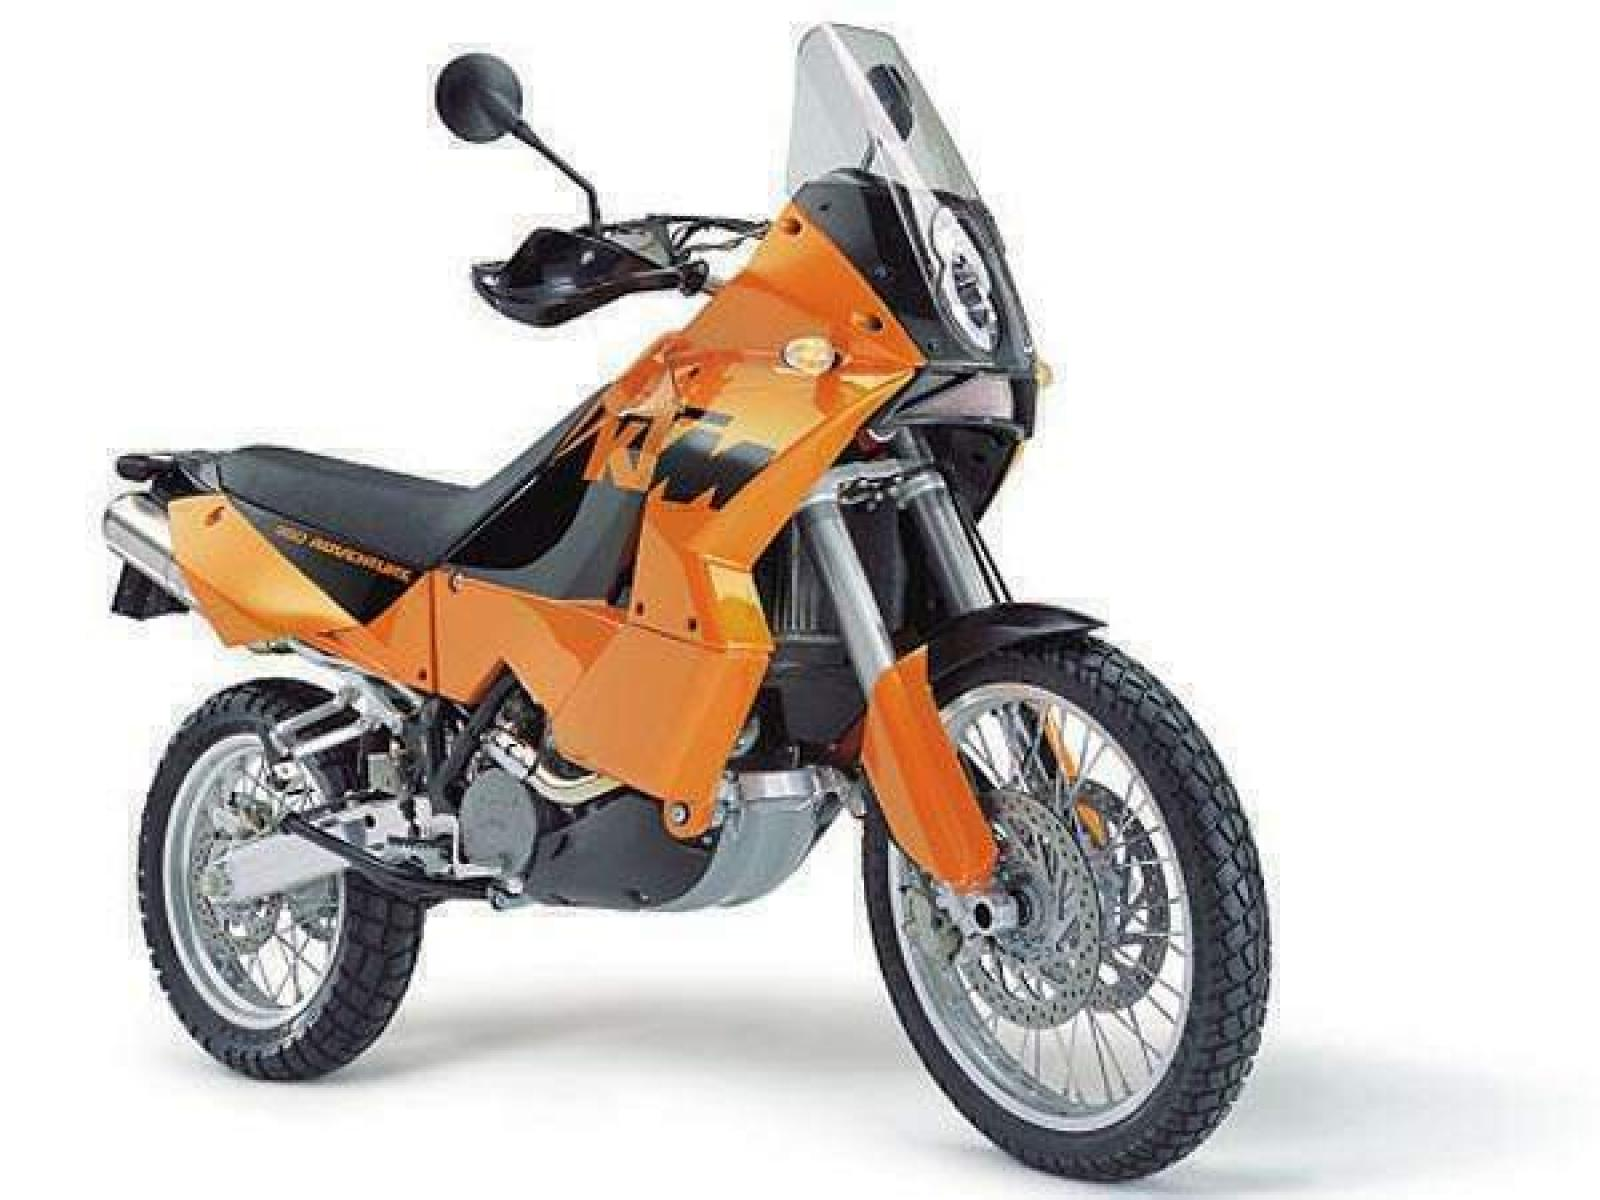 ktm ktm 950 adventure moto zombdrive com. Black Bedroom Furniture Sets. Home Design Ideas